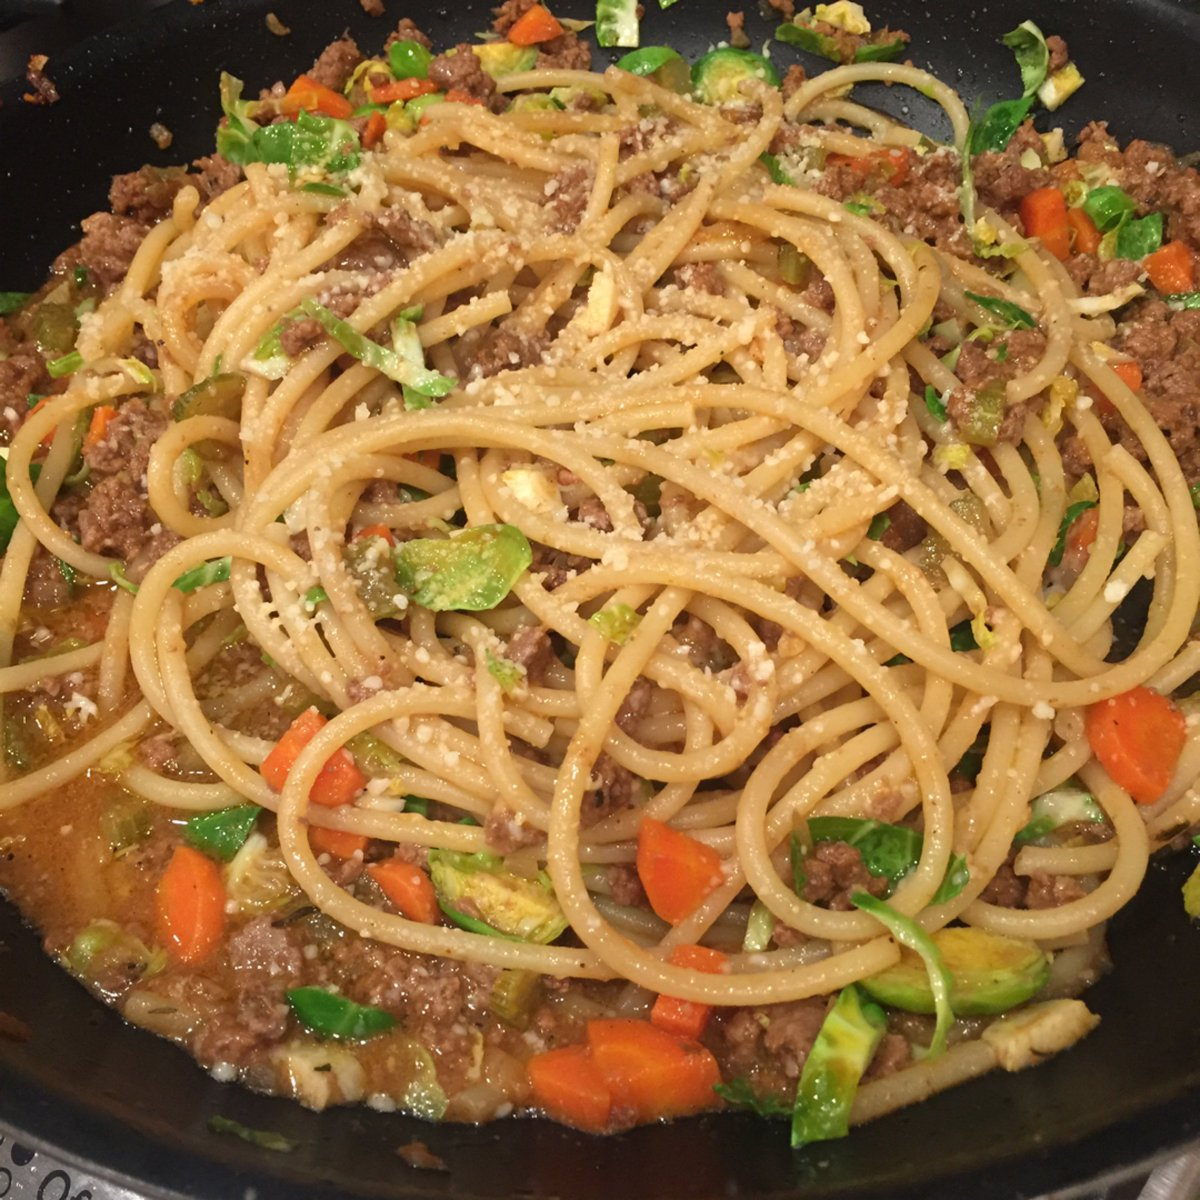 Blue apron bucatini - Gayle Fine On Twitter Bucatini Pasta Bolognese With Brussels Sprouts Blueapron Https T Co Dac8pbk2ts